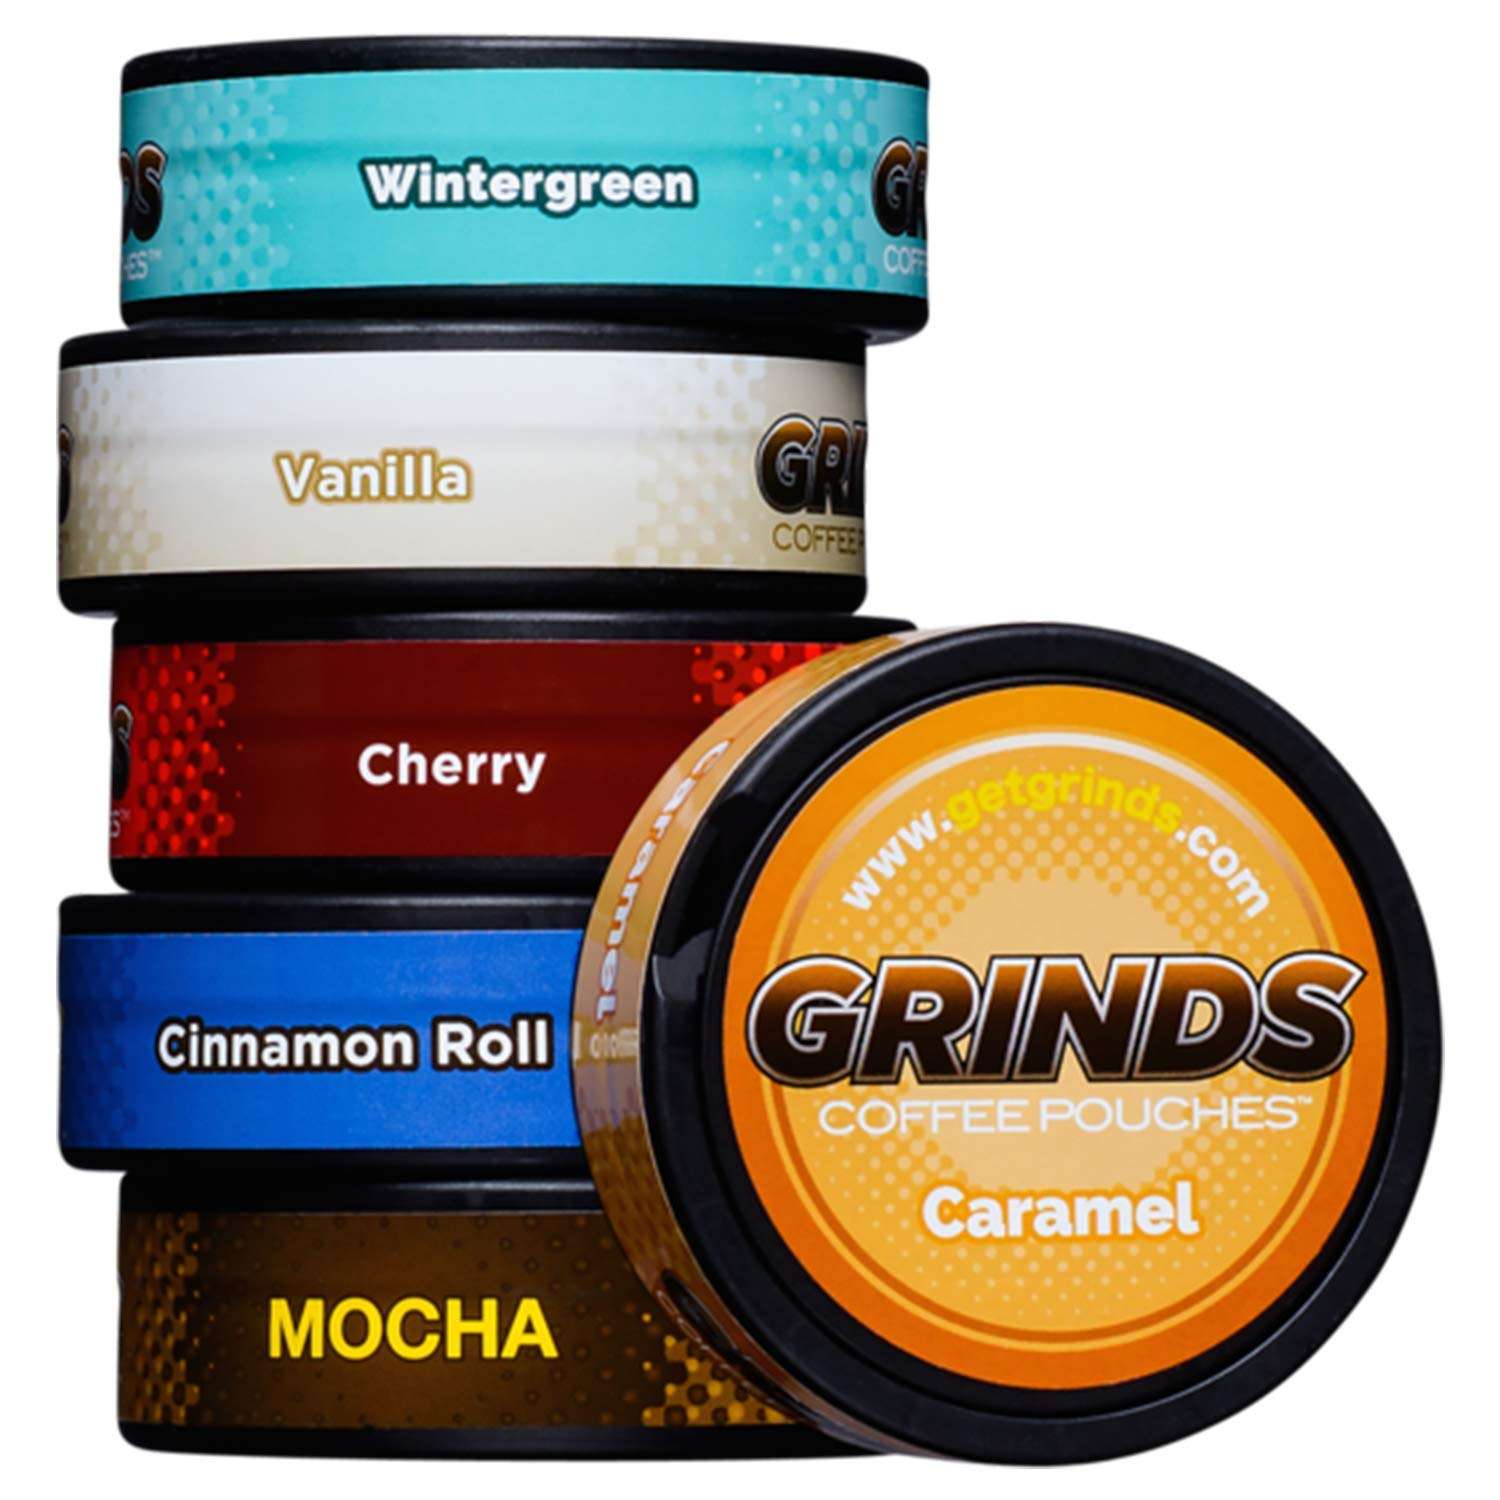 Grinds Coffee Pouches - New 6 Can Variety Pack (with Wintergreen & Cherry) - Tobacco Free, Nicotine Free Healthy Alternative by GRINDS